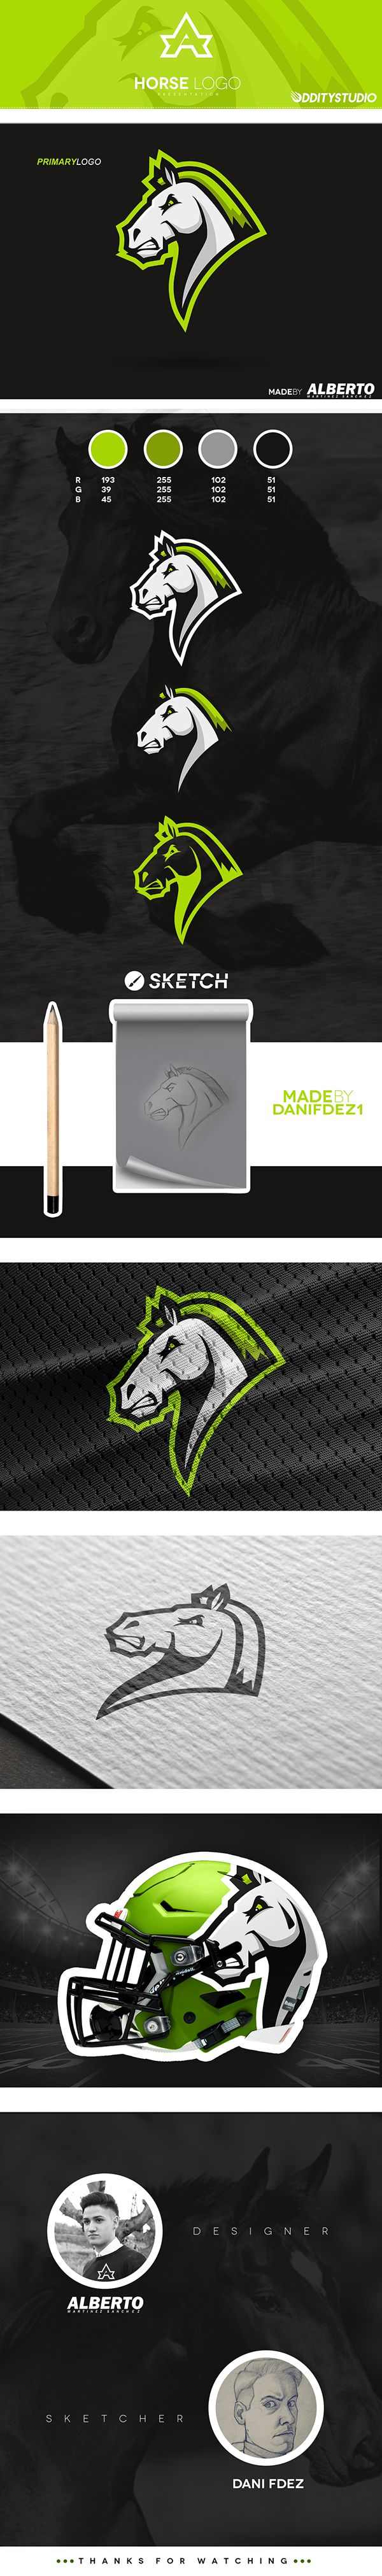 Horse Mascot Logo, for sale